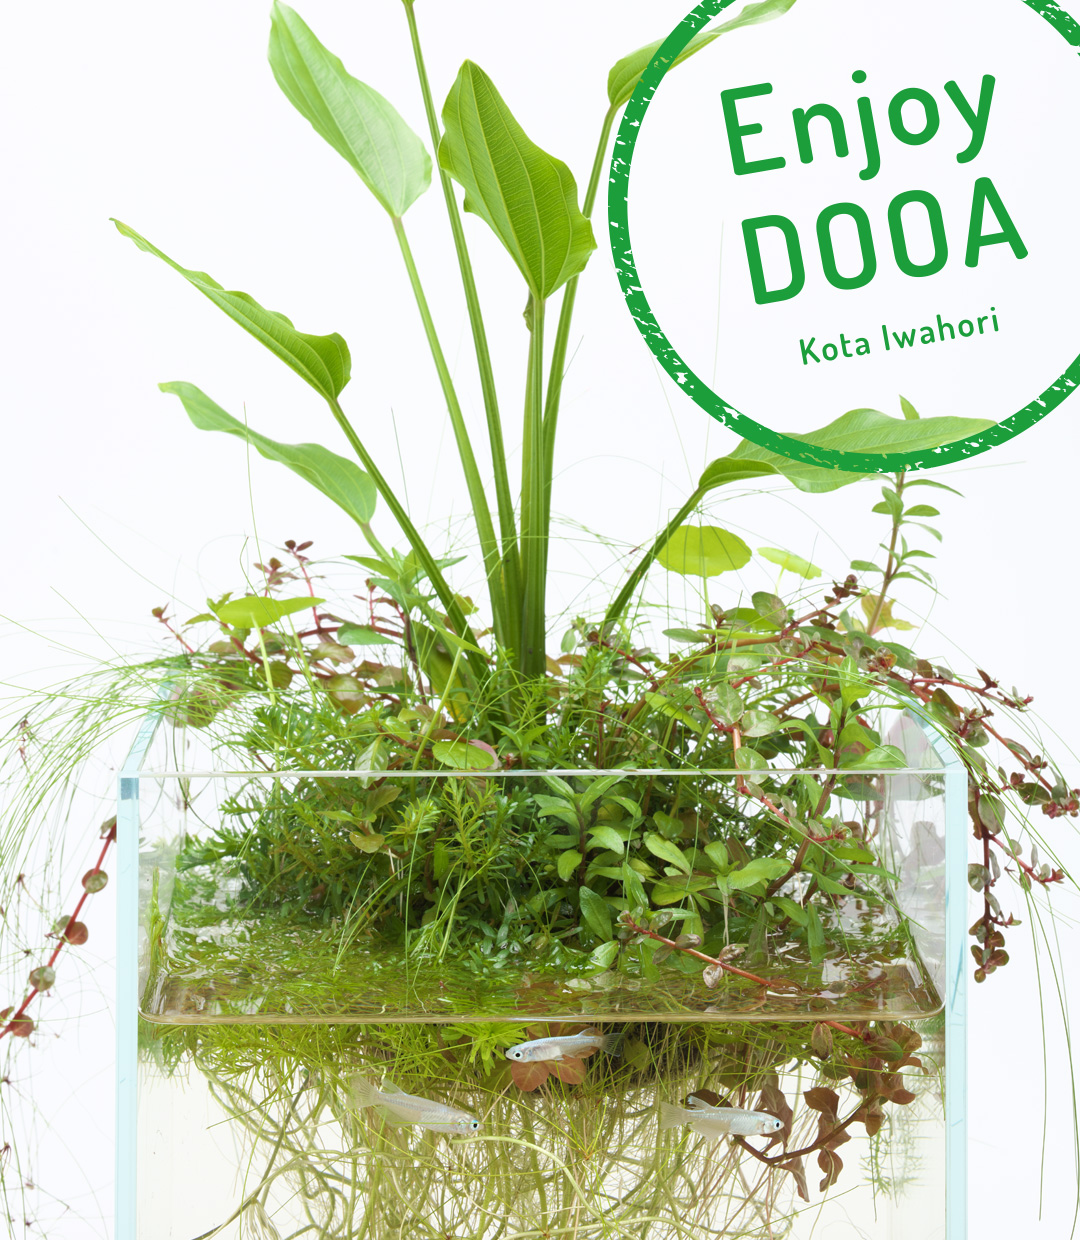 Enjoy DOOA 'Enjoy the nice appearance of Echinodorus with Neo Glass Air'